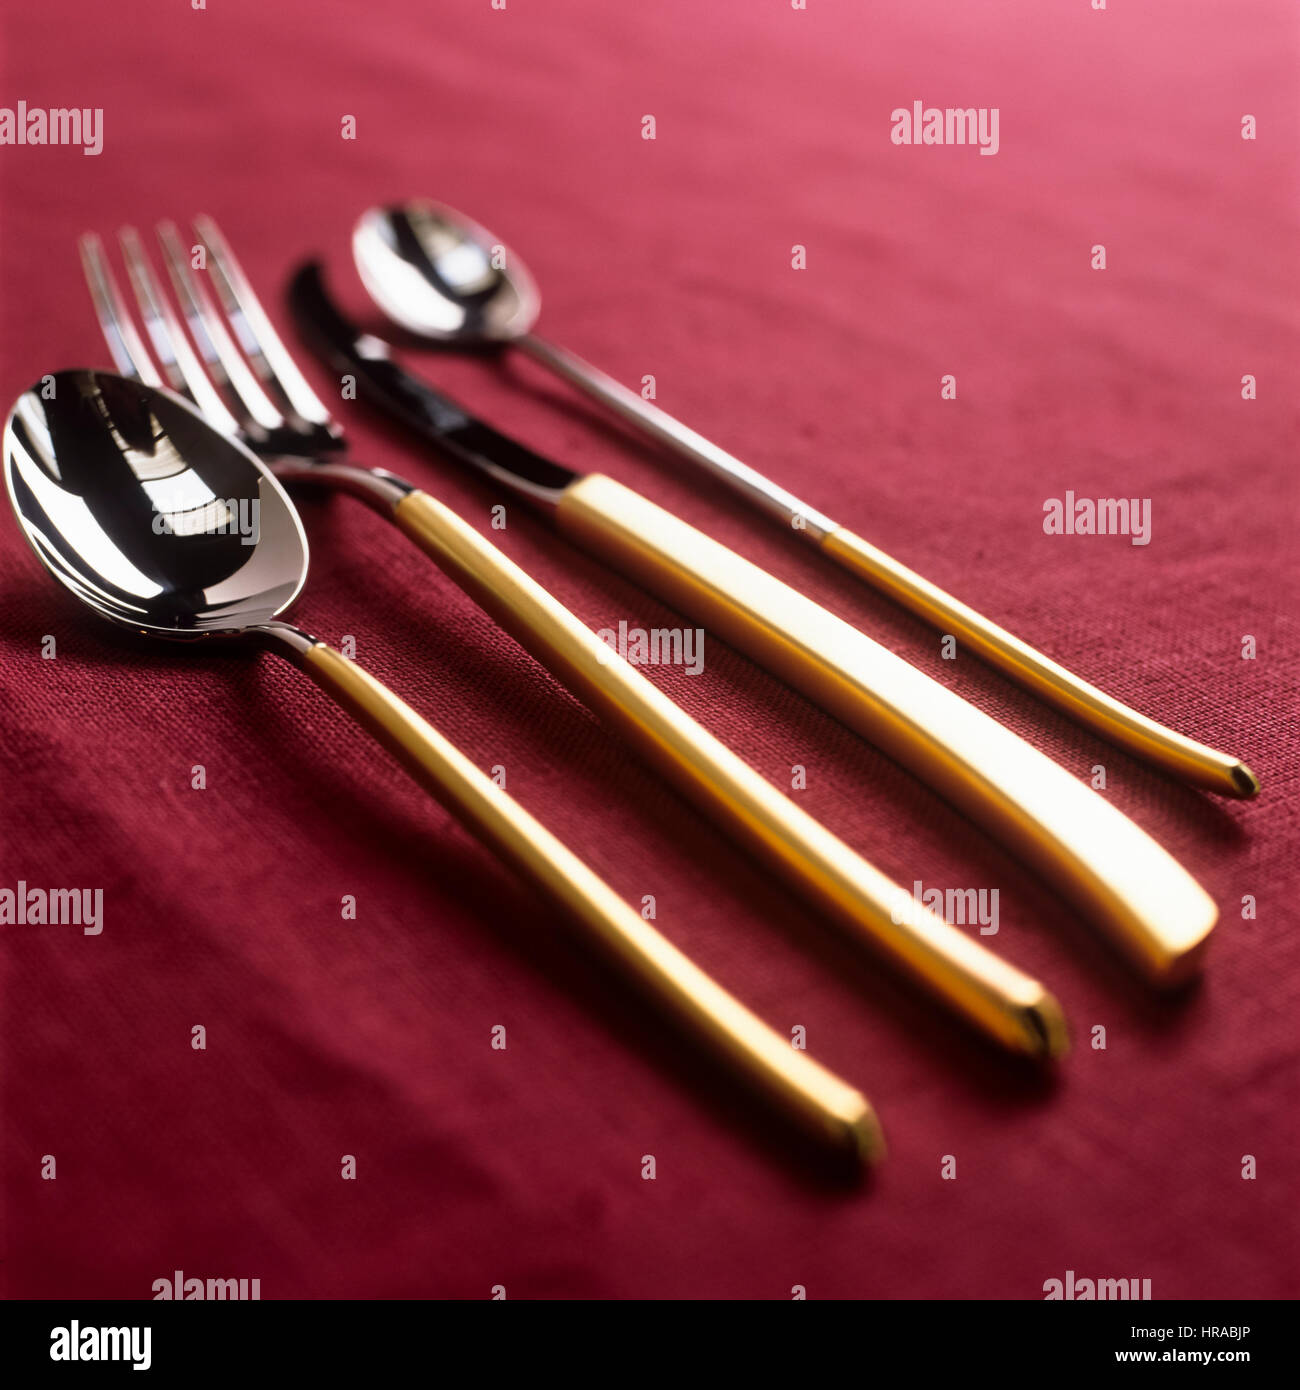 Gold and silver cutlery. - Stock Image